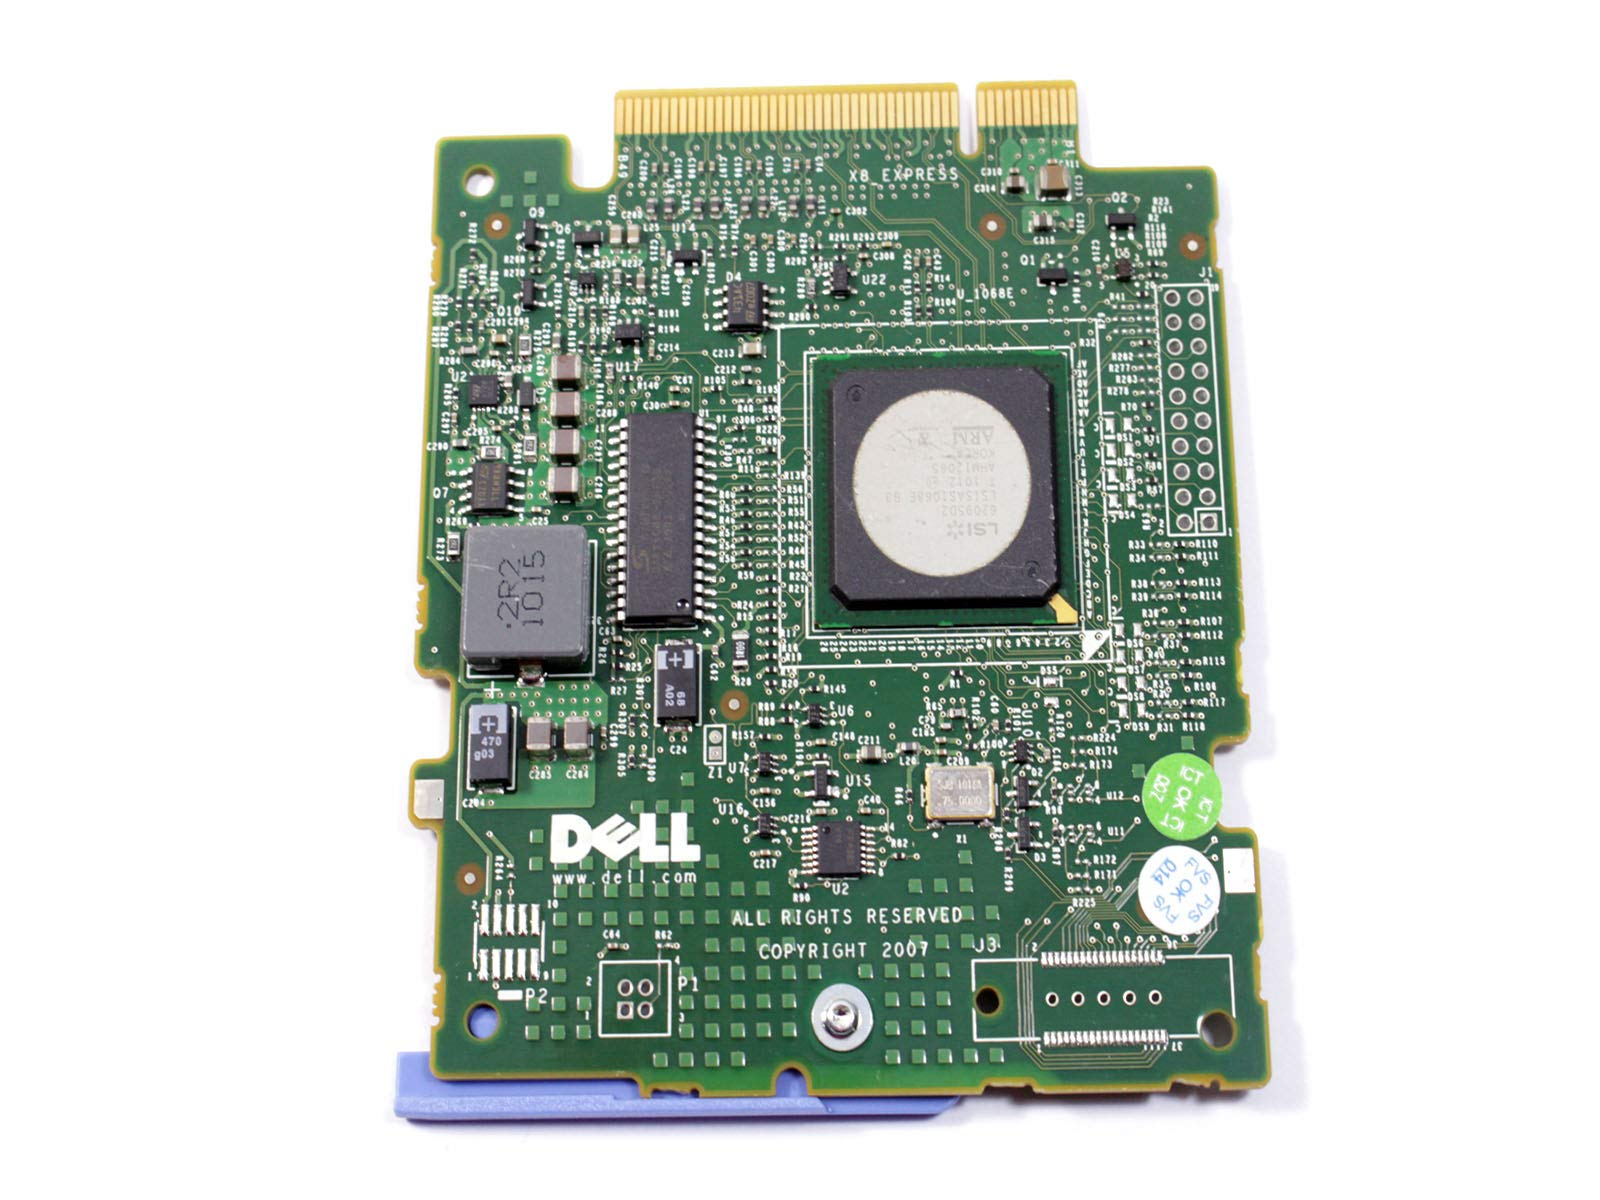 Y159P - RAID Controller PCI-E x8 SAS PERC S300 PowerEdge R410